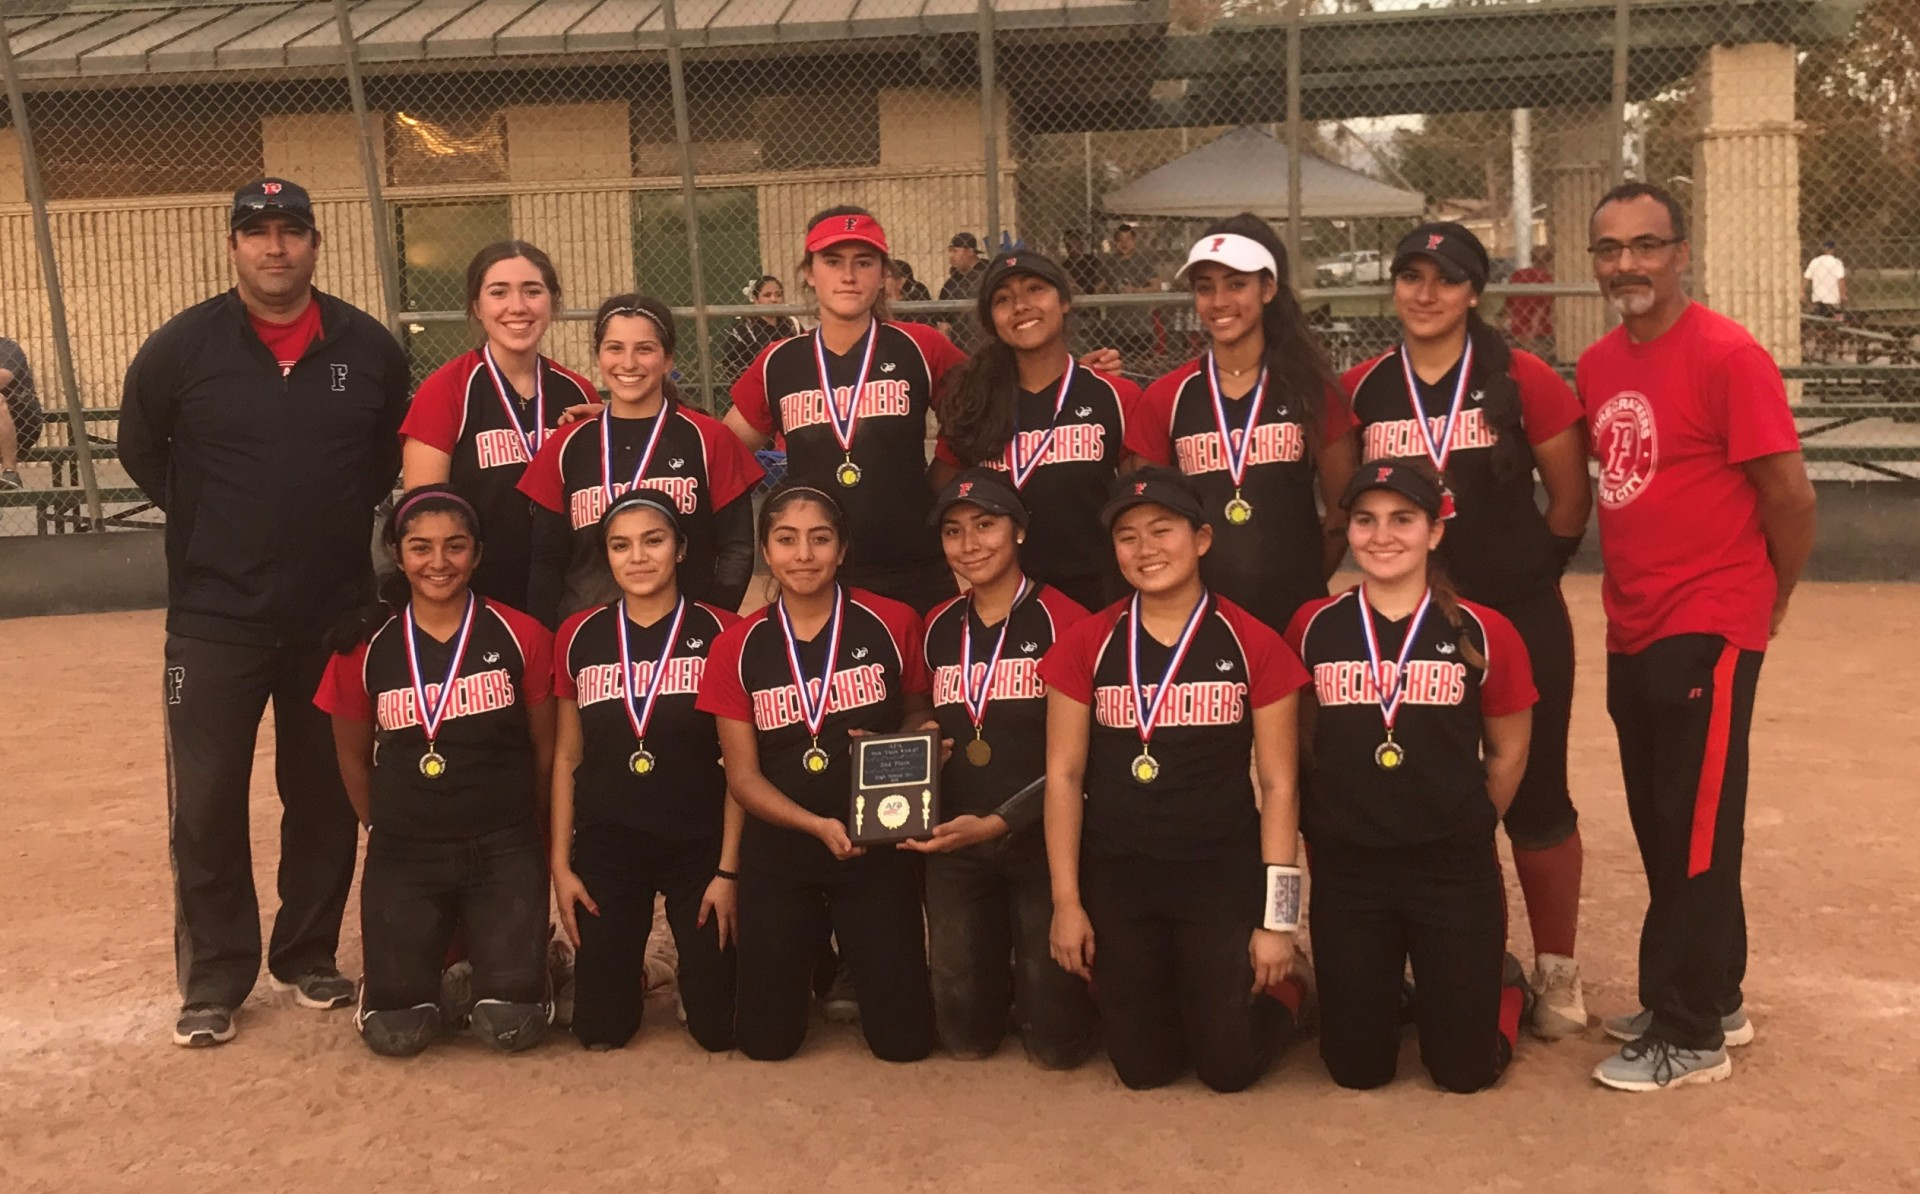 HS Runner Up - Firecrackers Media City